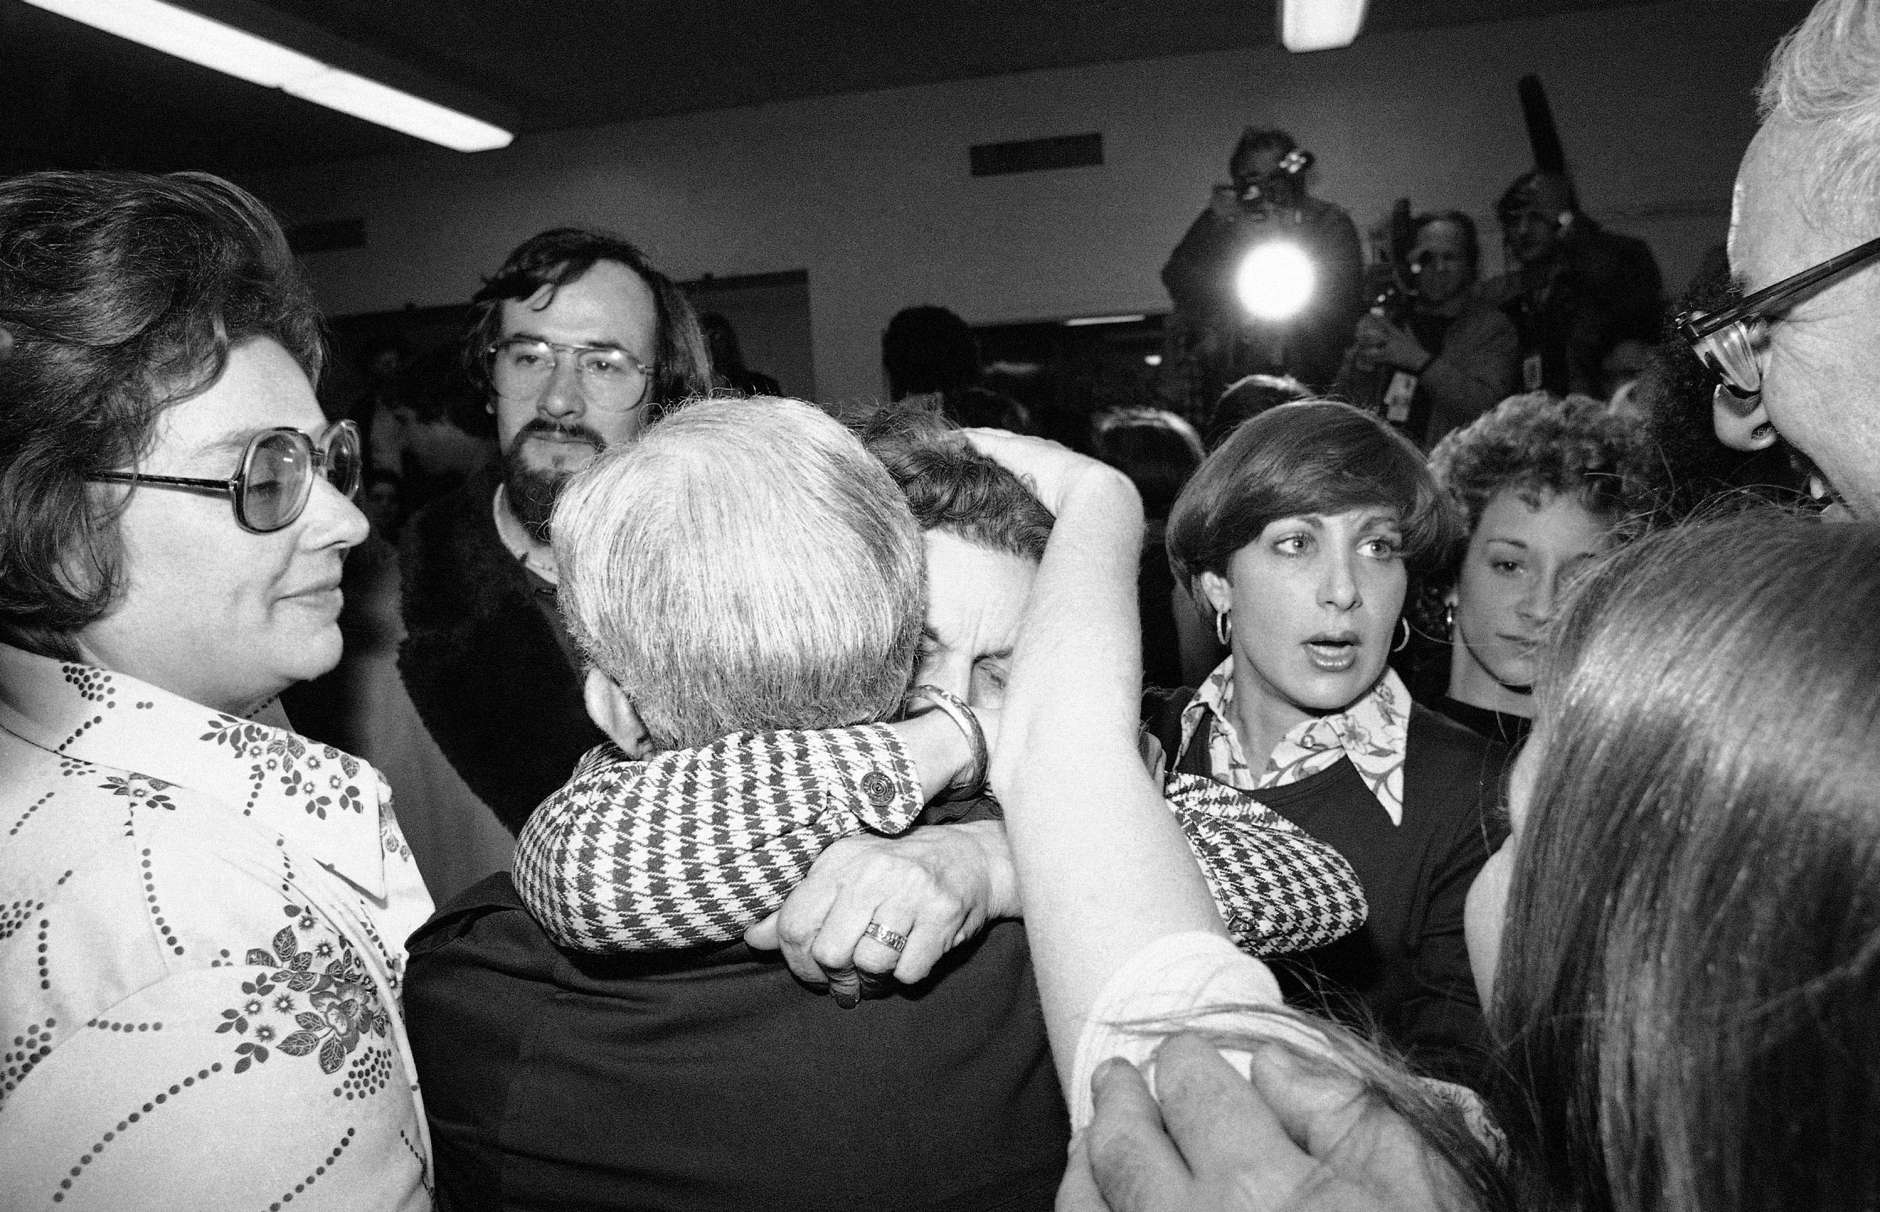 Relatives and friends are reunited at Washington's Foundry Methodist Church on Friday, March 11, 1977 after hostages were released by terrorists who had held them in three buildings since Wednesday. (AP Photo)